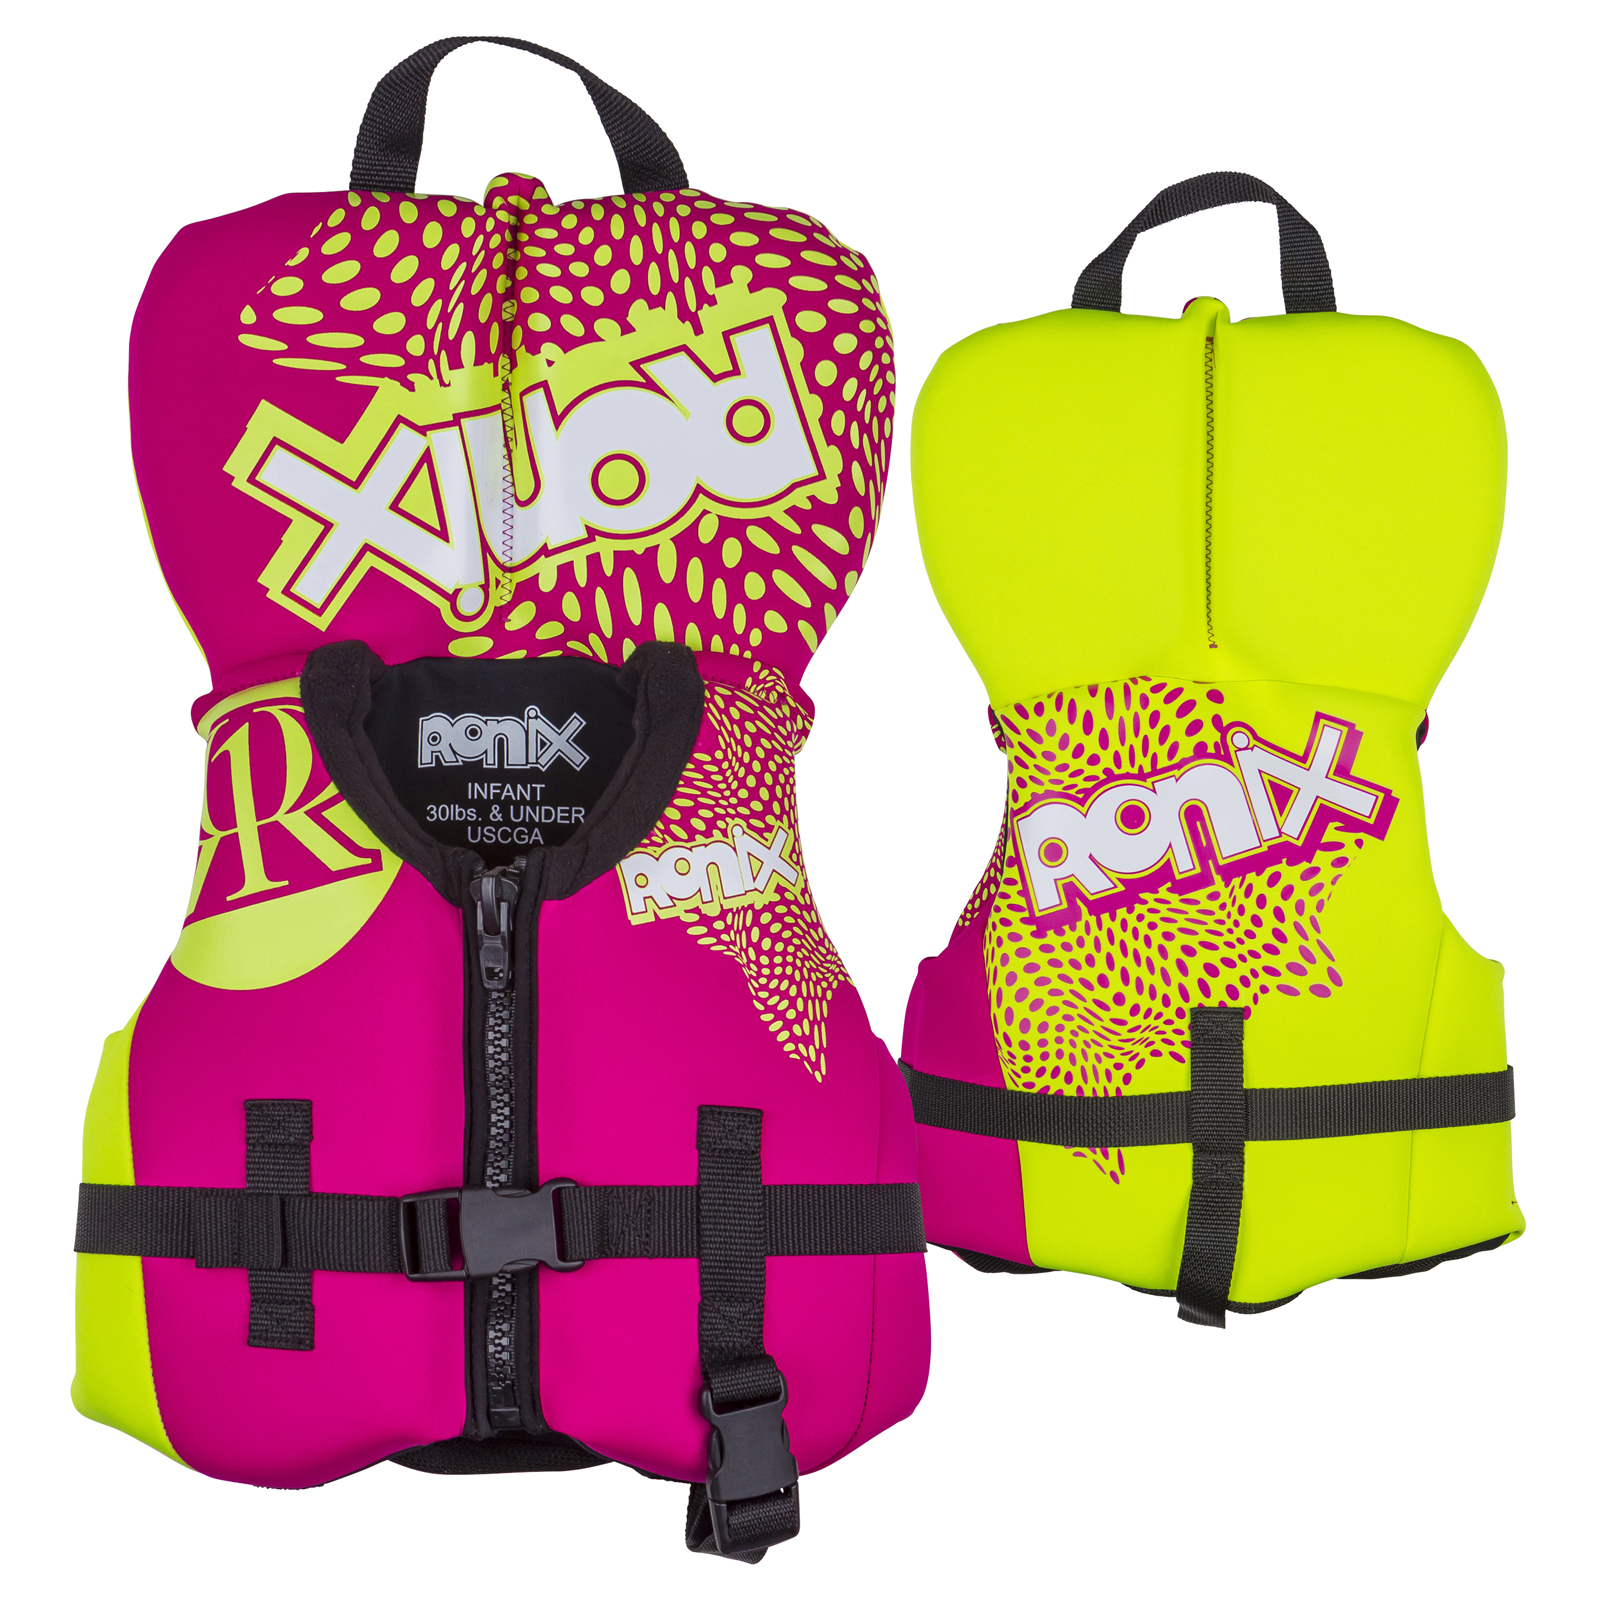 AUGUST GIRL'S TODDLER VEST RONIX 2017